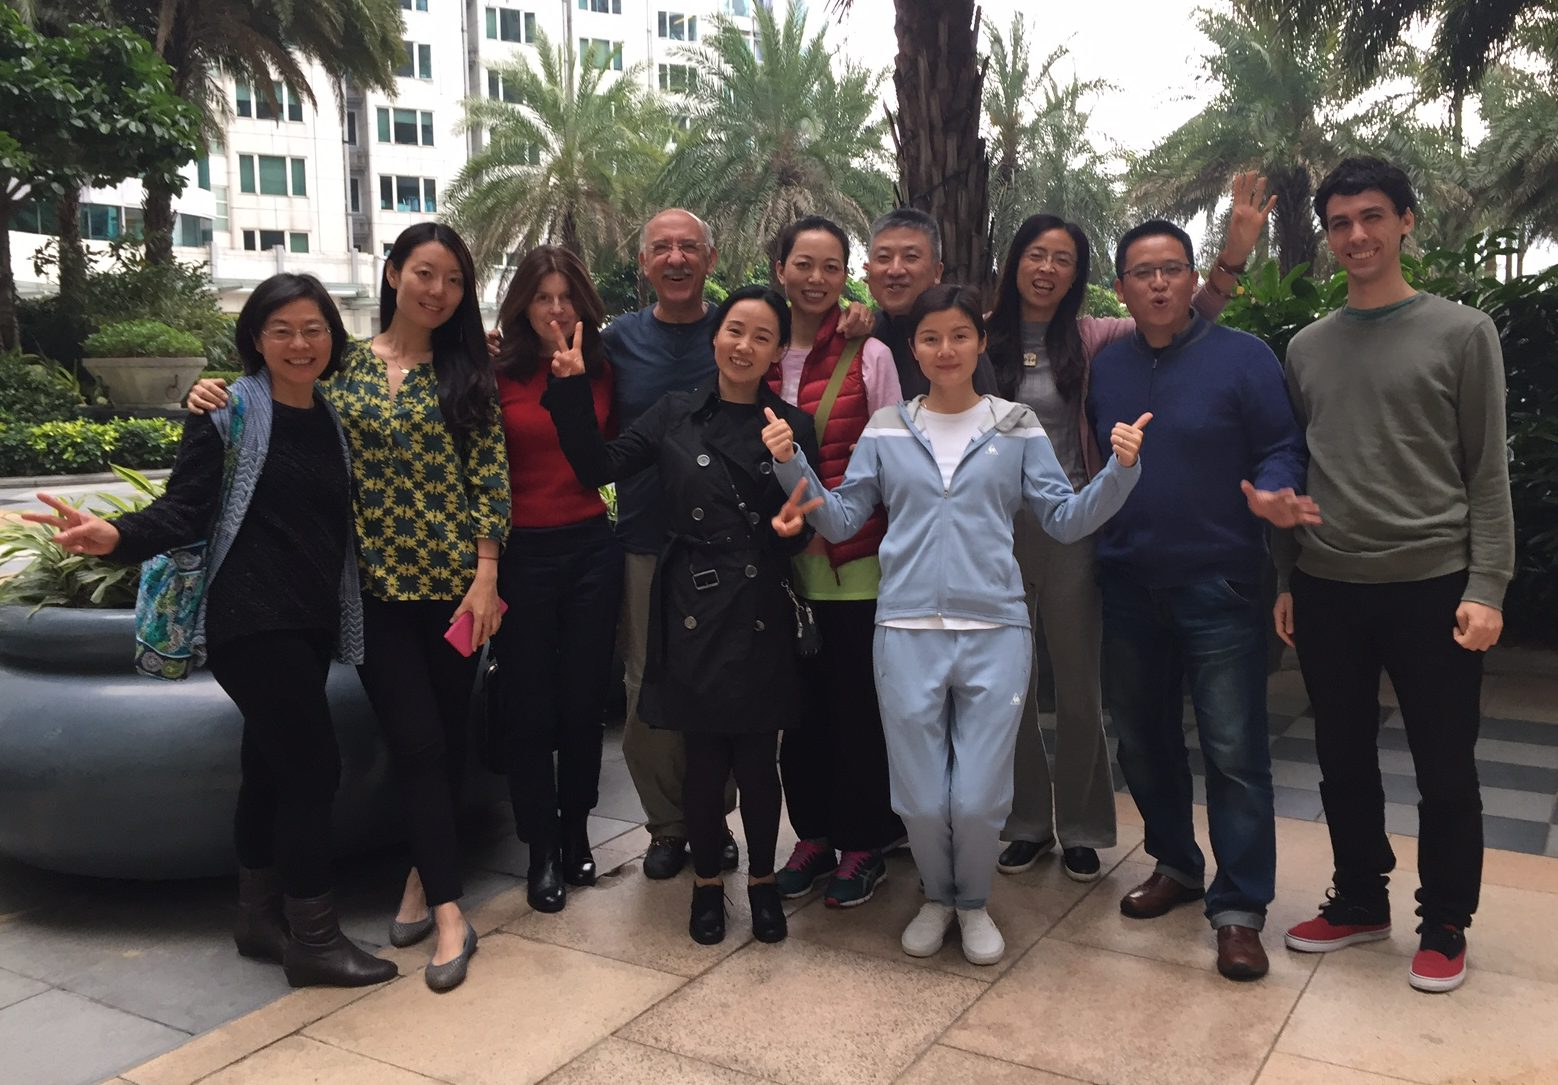 The 13th Communication Course with Gianfranco Brero in Hong Kong from February 17-19, 2017